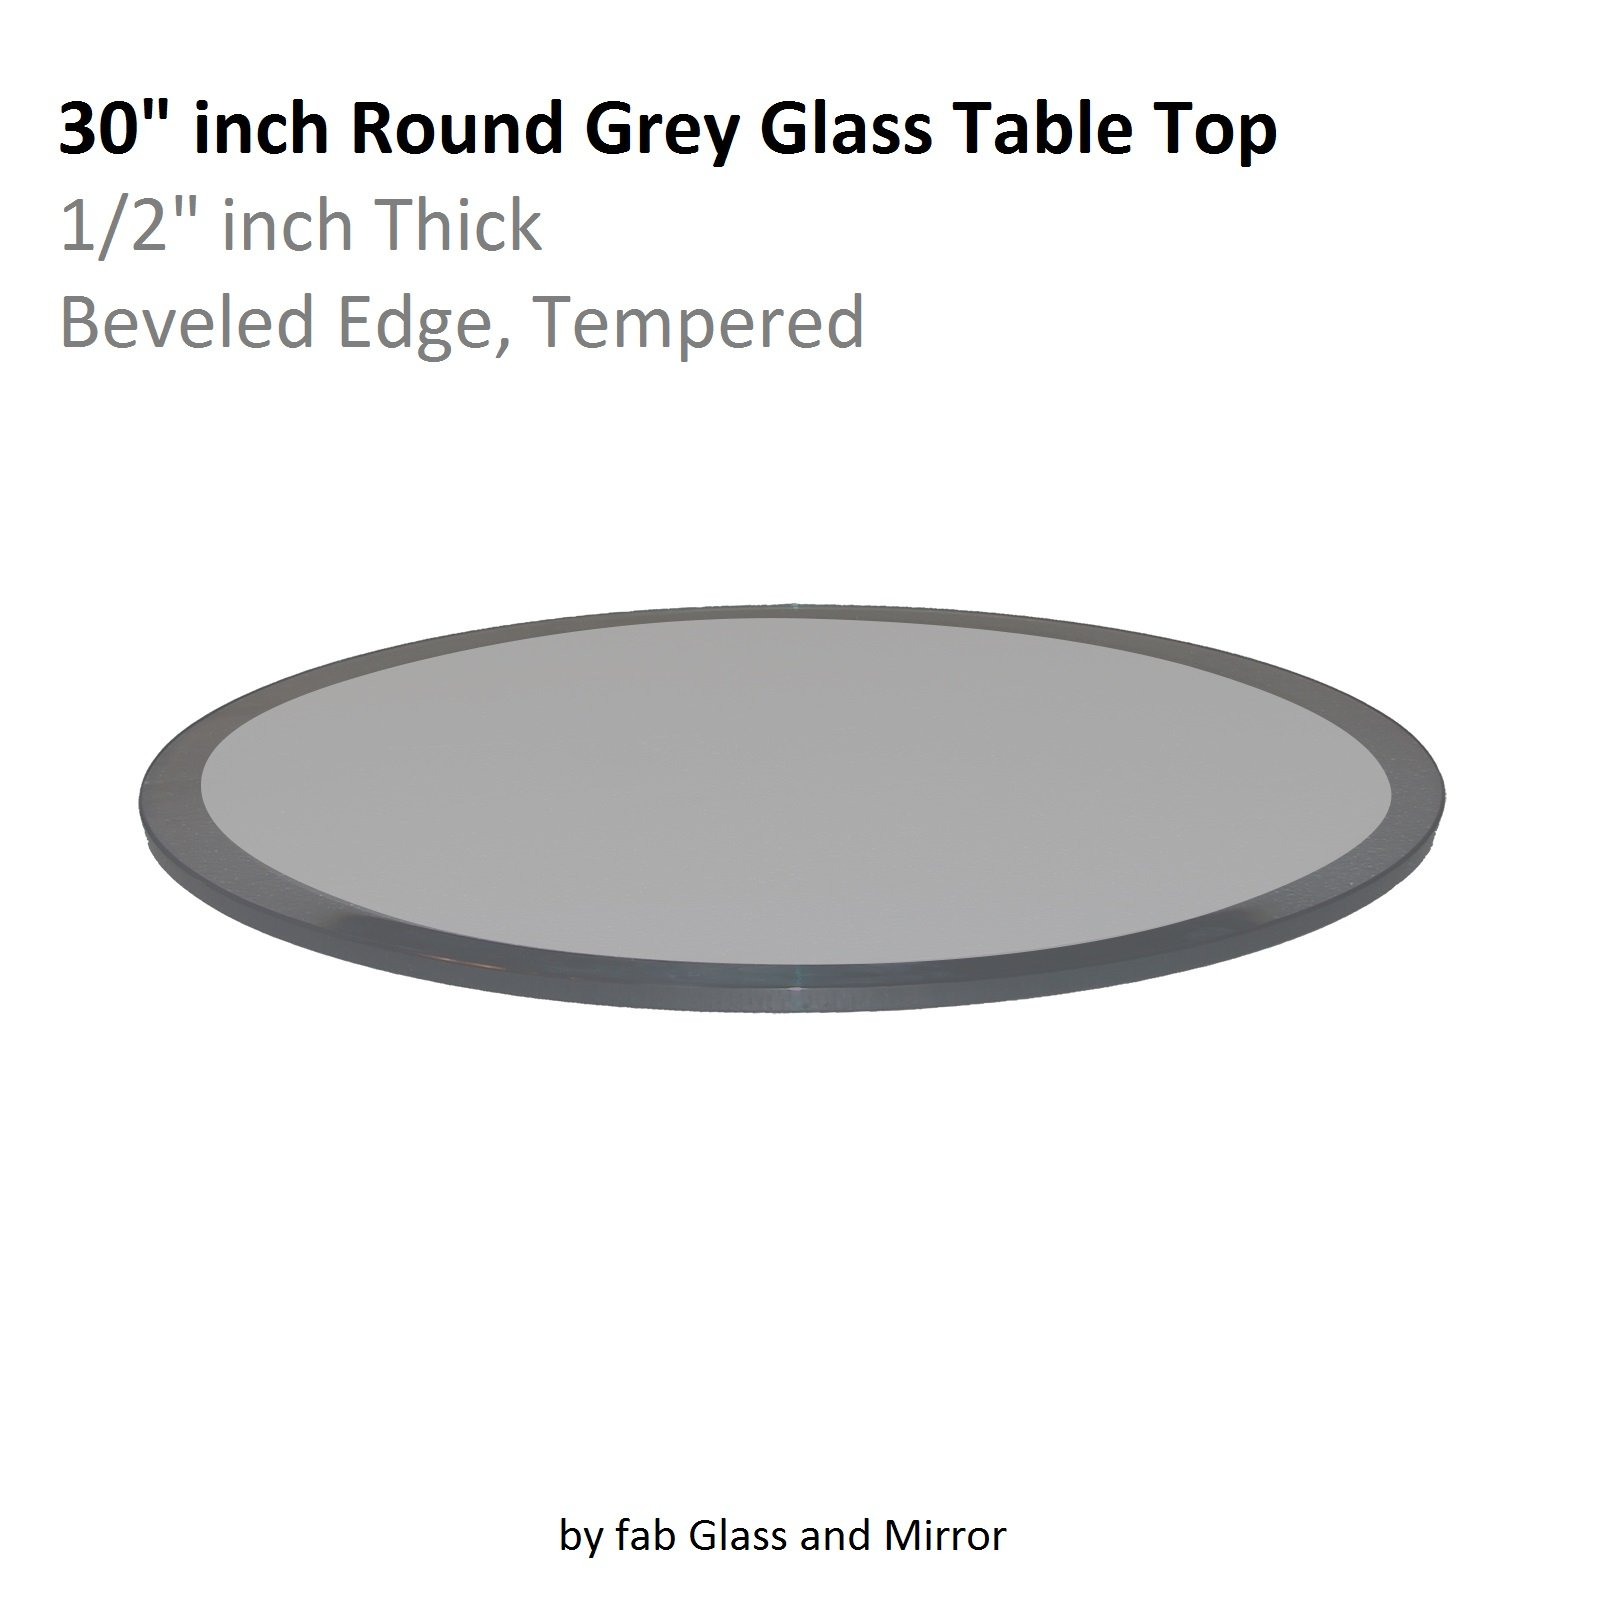 Fab Glass and Mirror Glass Table Top: 30'' Round 1/2'' Thick Beveled Tempered, Grey